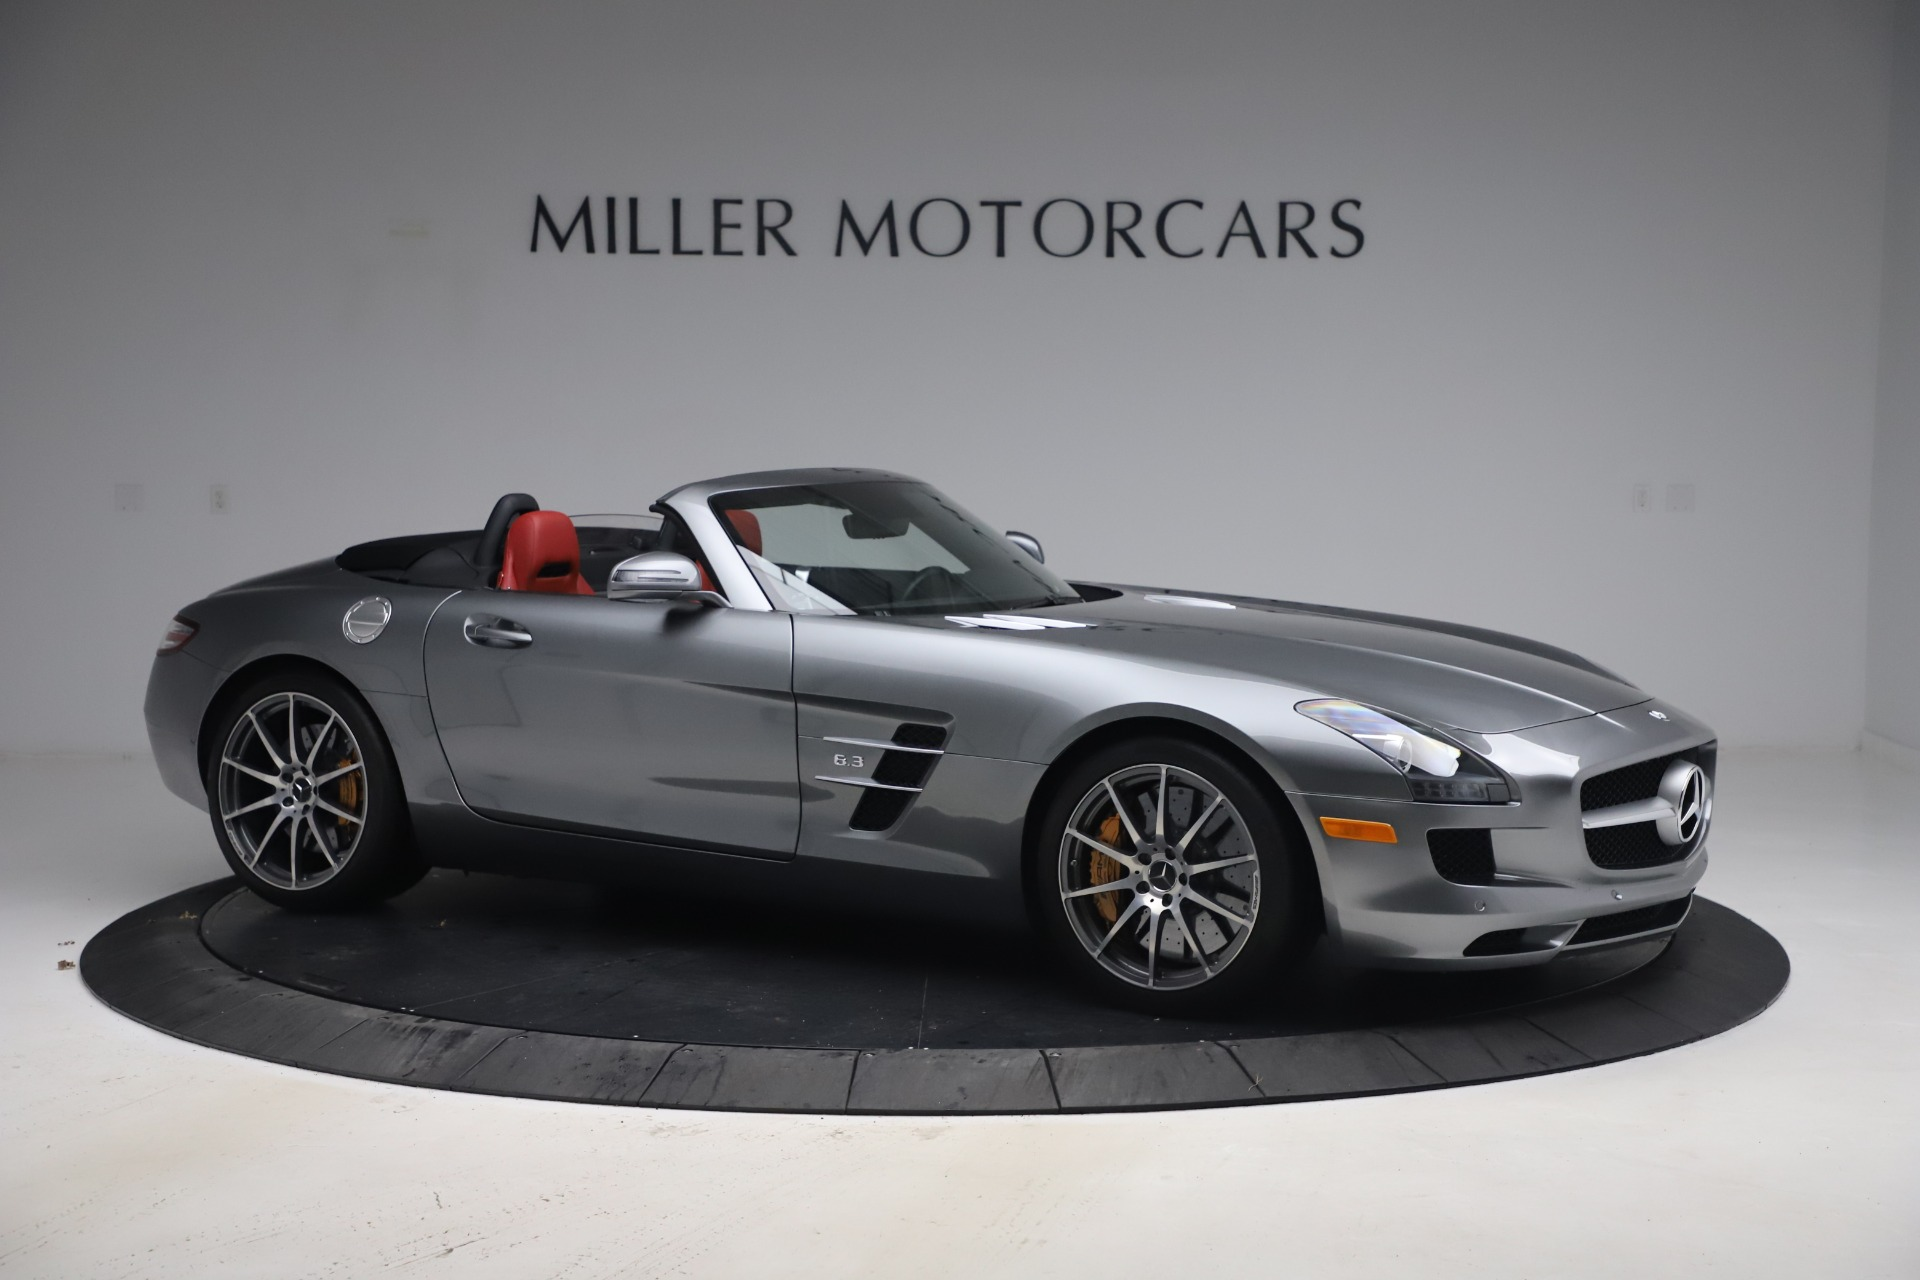 Used 2012 Mercedes-Benz SLS AMG  For Sale In Greenwich, CT. Alfa Romeo of Greenwich, 7563 3189_p15